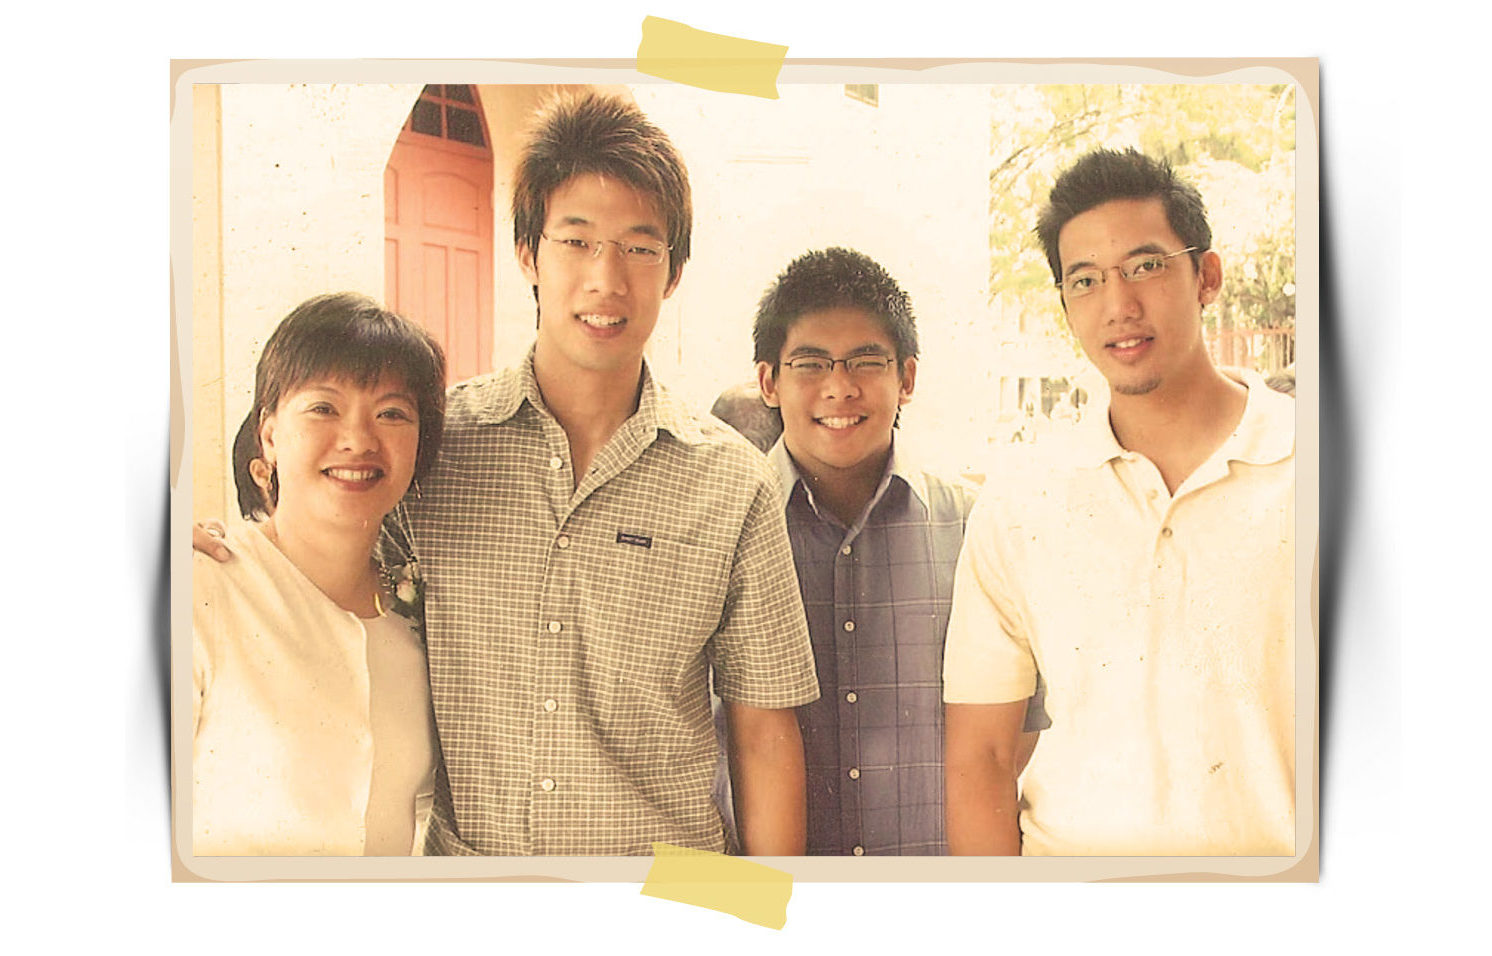 Mother's Day 2021: The Oei Brothers On Their Mother's Love